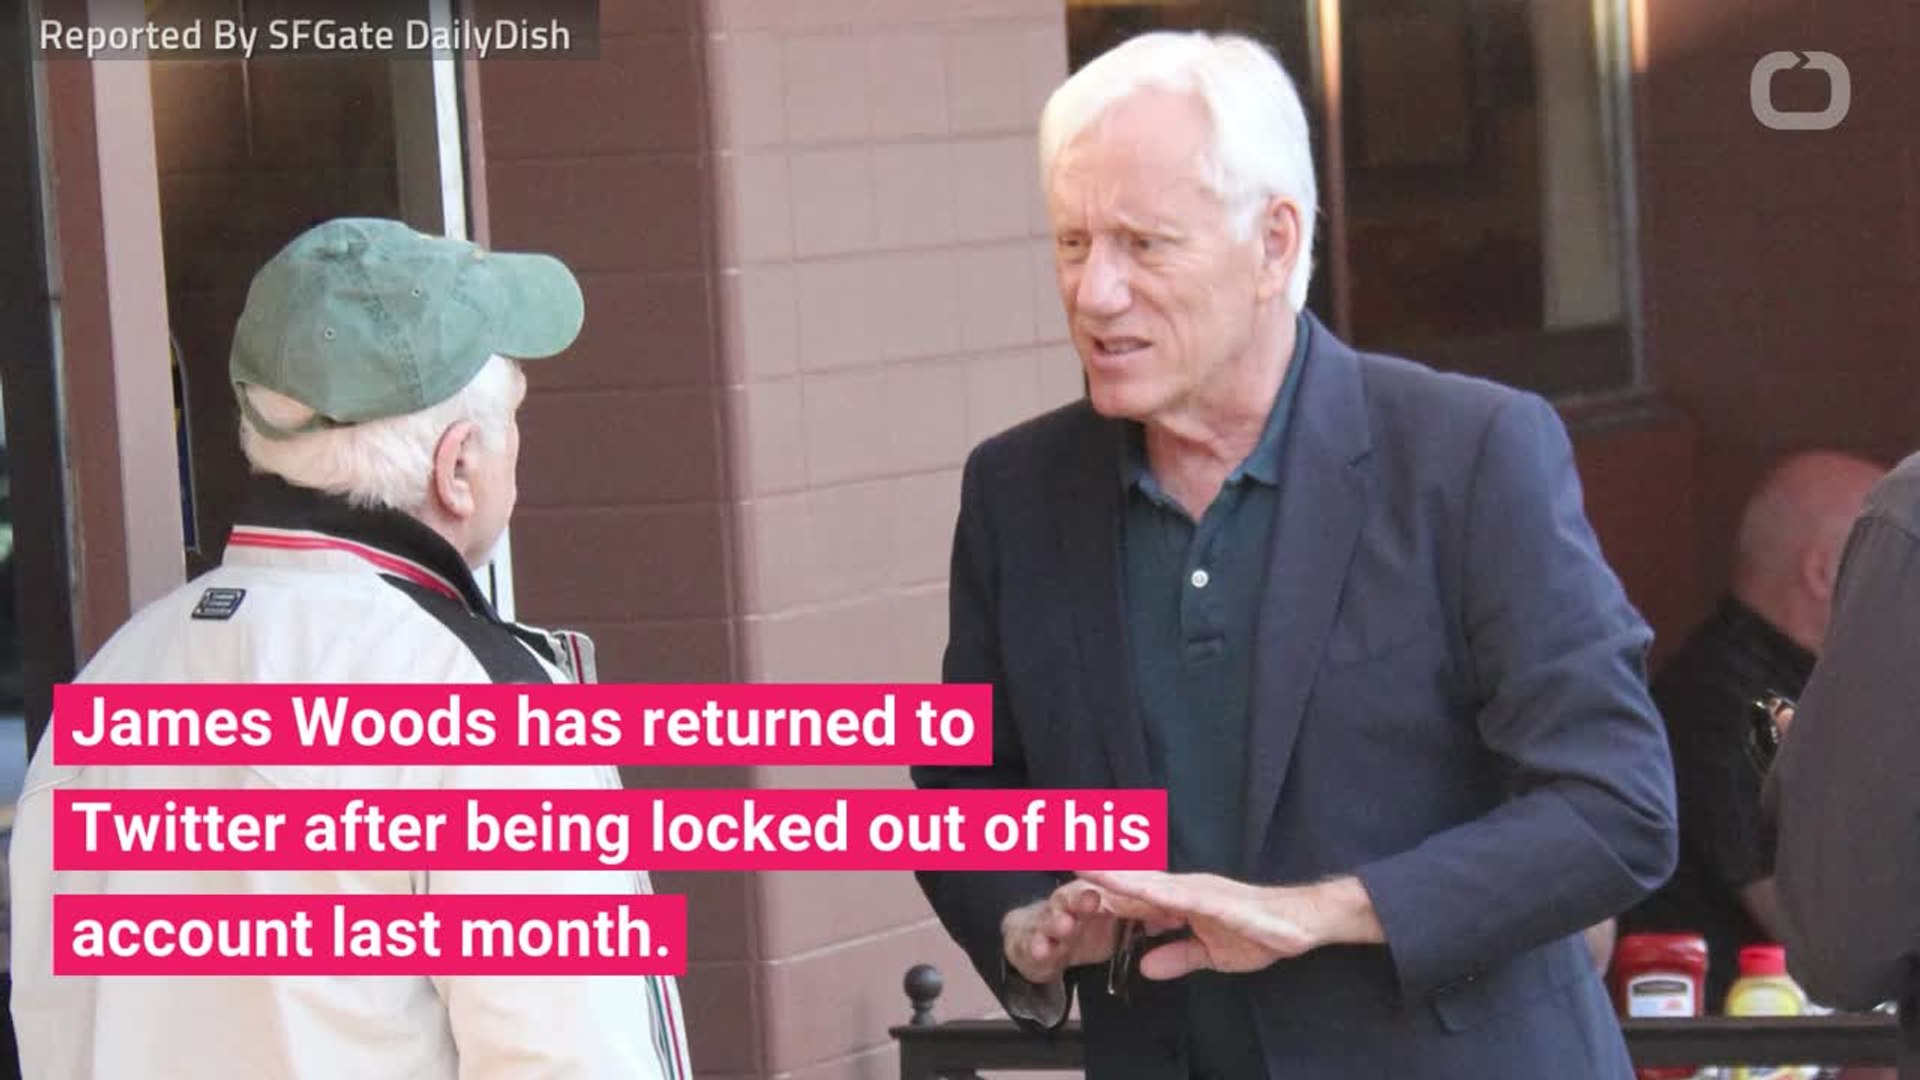 James Woods Return To Twitter Includes Tweets Bashing Twitter And Praising Trump